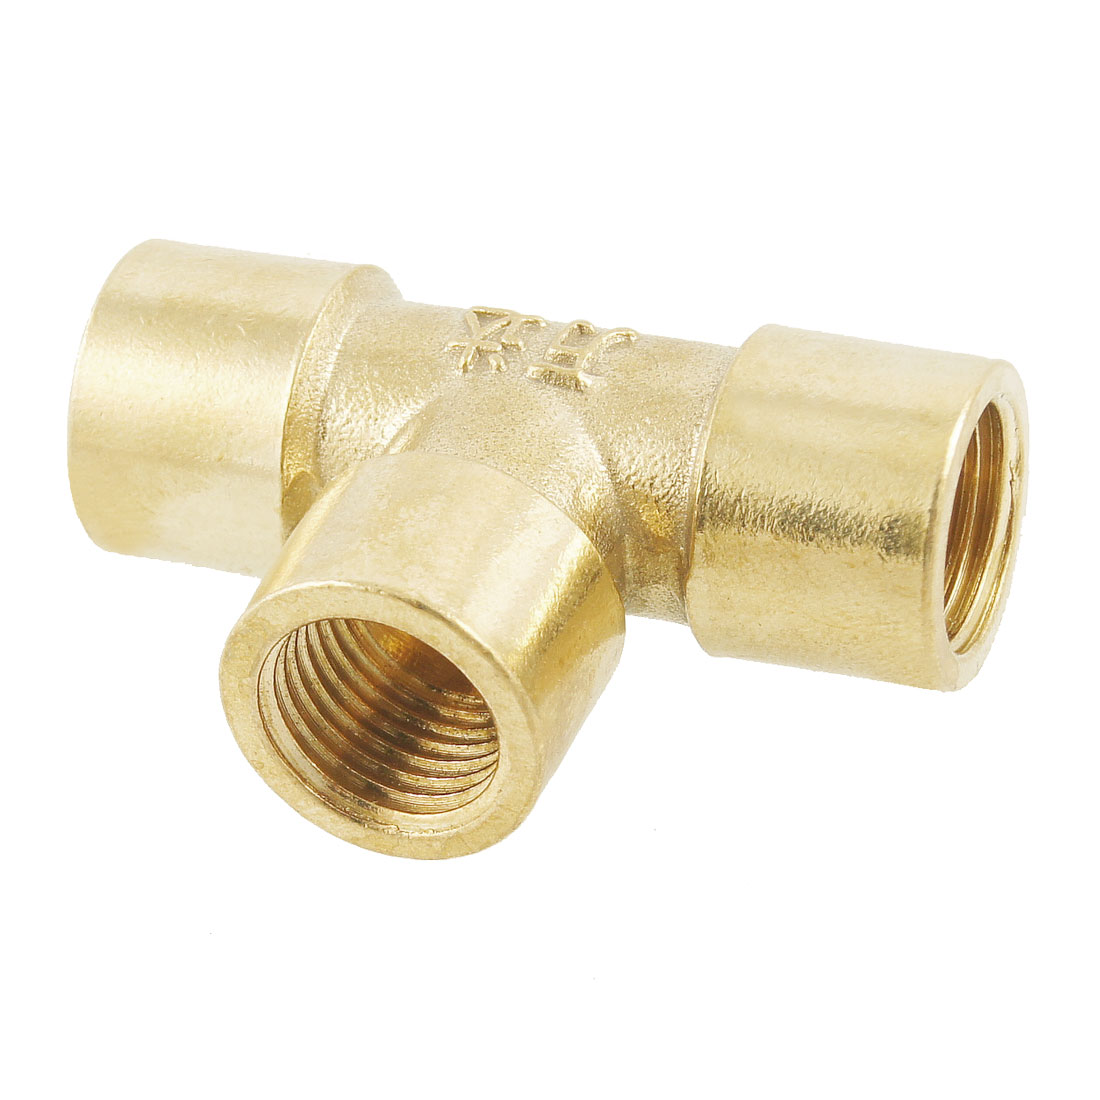 "1/4"" Female Thread 3 Way T Shaped Equal Tee Coupling Brass Pipe Fitting Adapter"